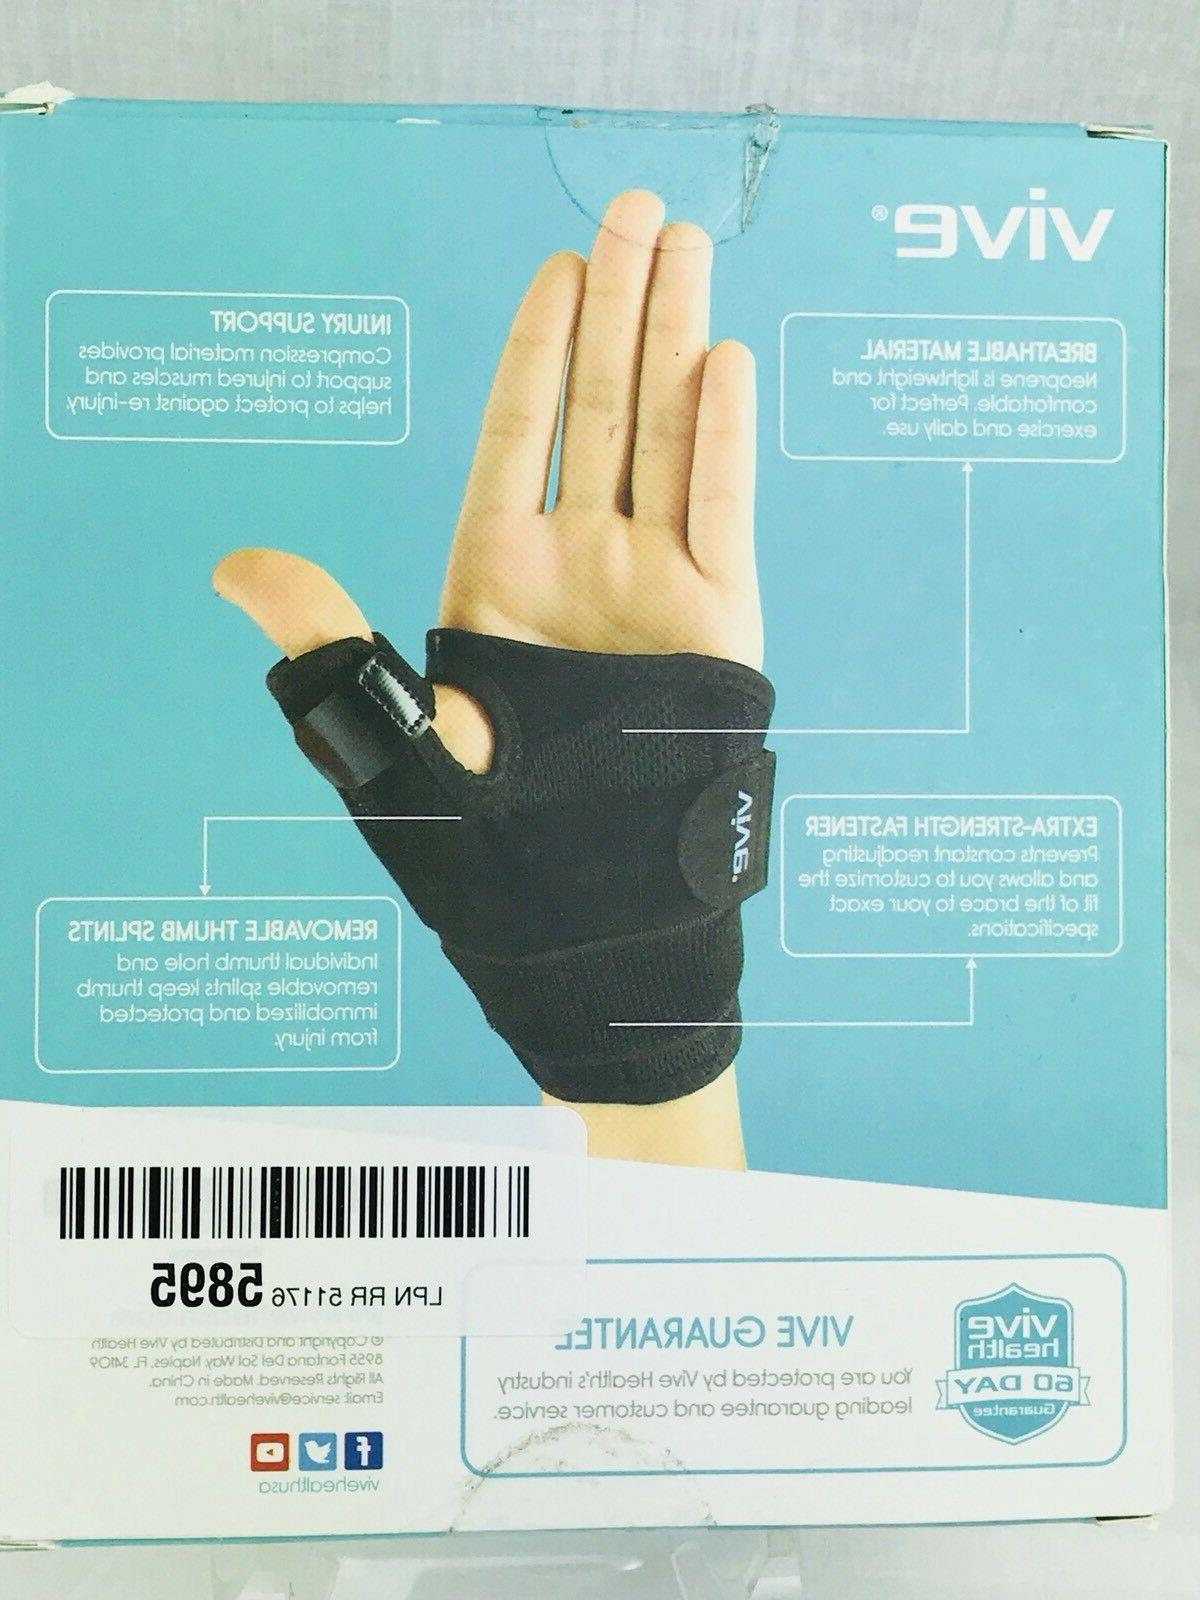 Arthritis Thumb Support Splint Vive for